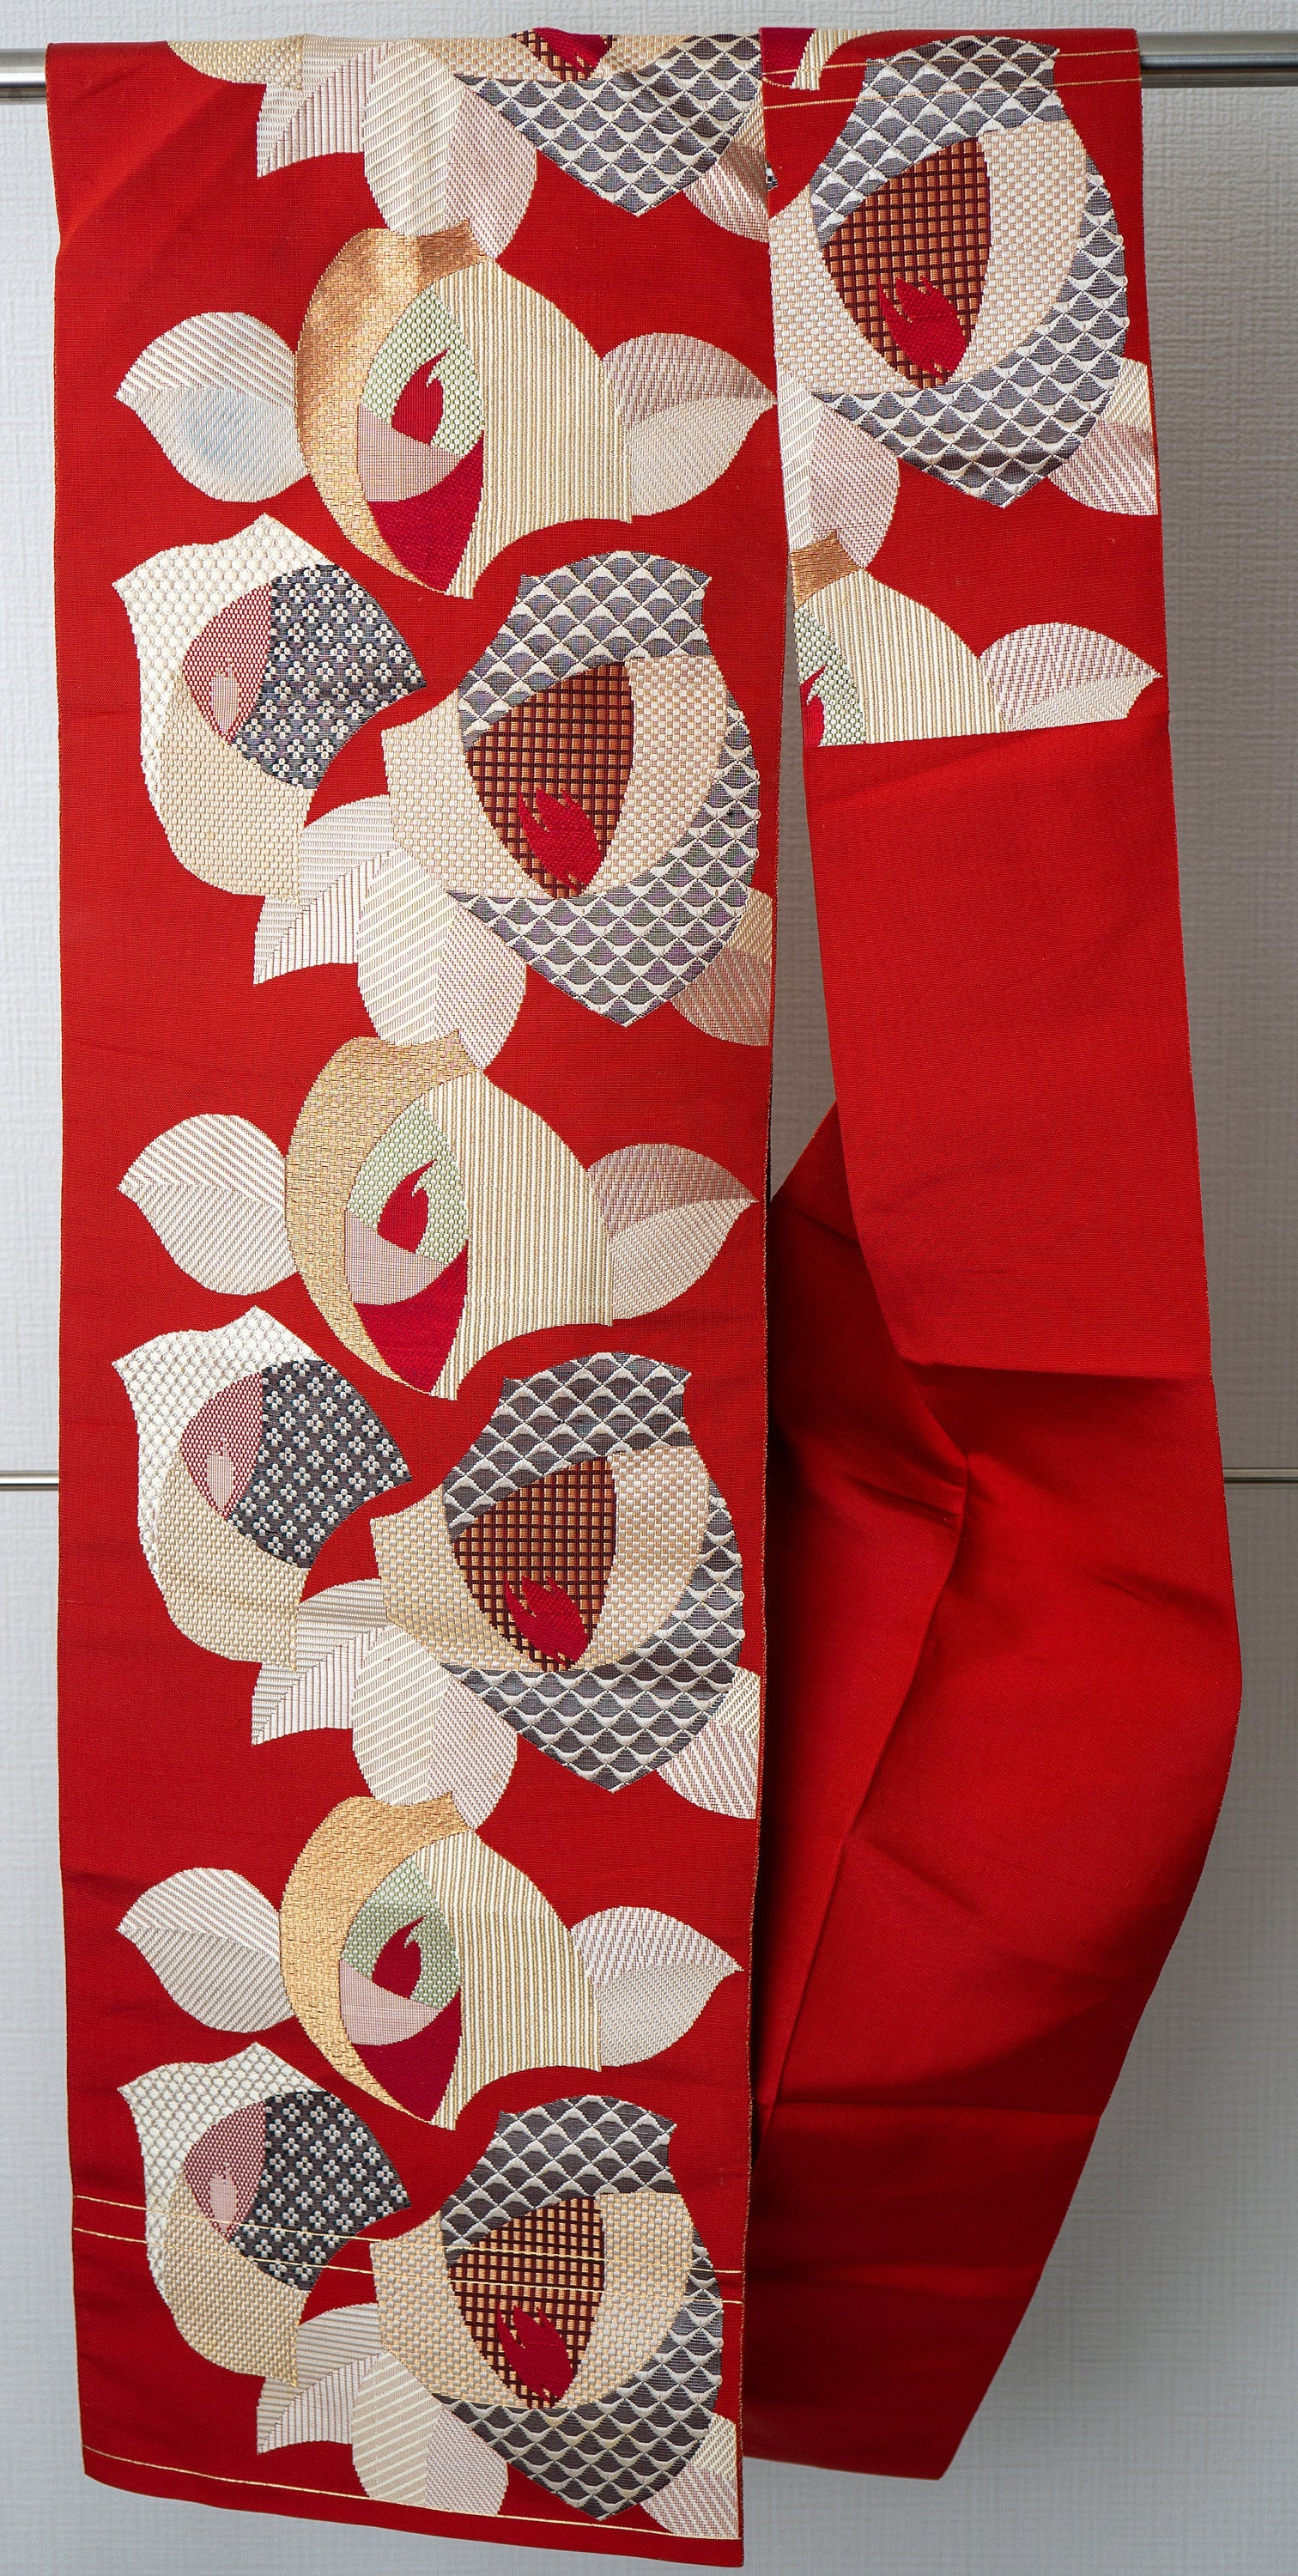 One-Sided Nagoya Obi - Red with Abstract Floral Patterns - Designs Inside of the Leaves and Petals